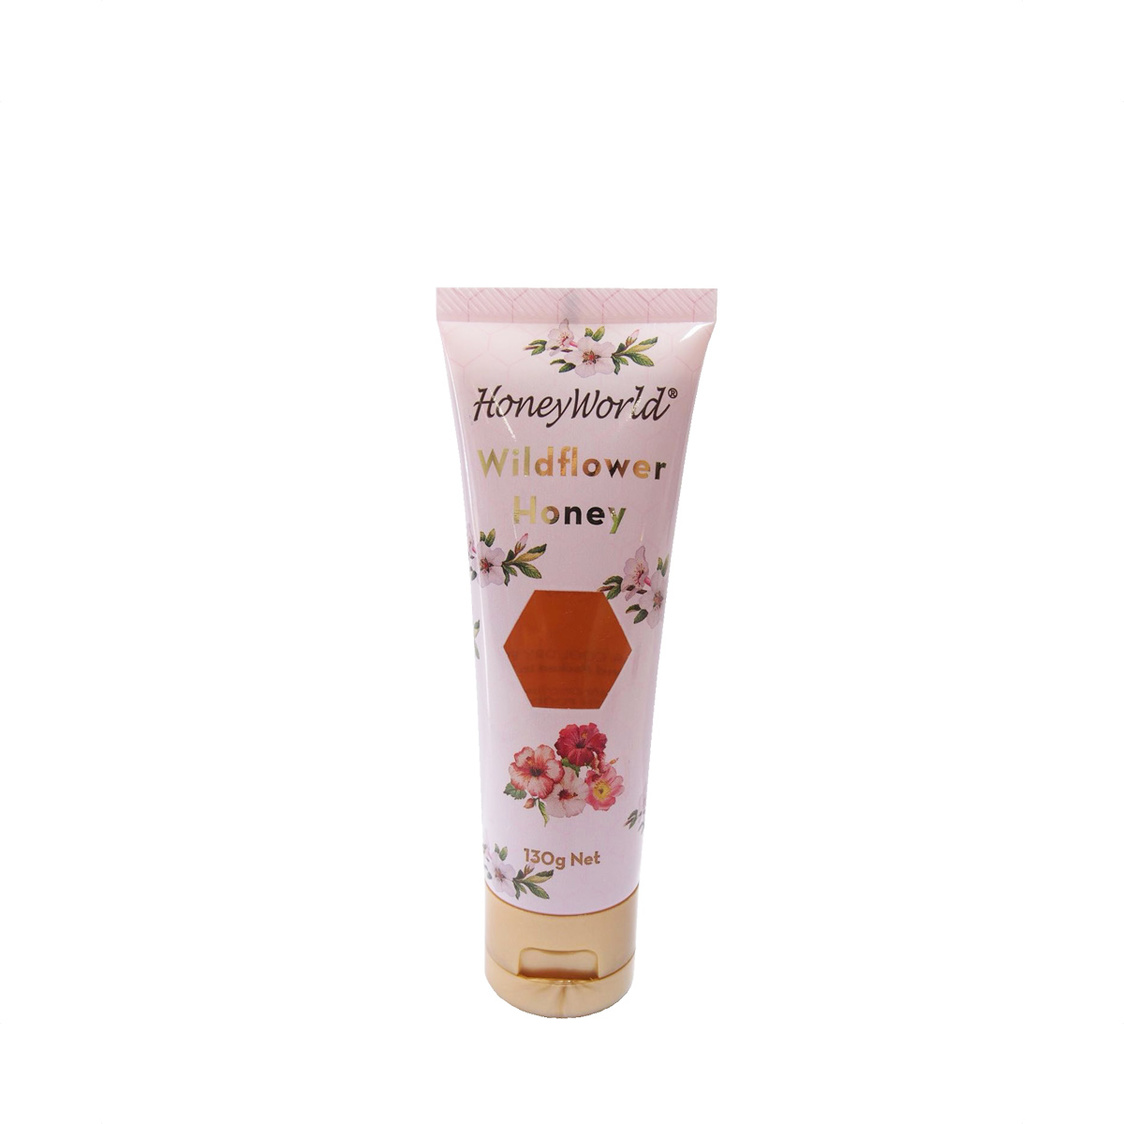 Thailand Wildfower Honey In Tube 130g